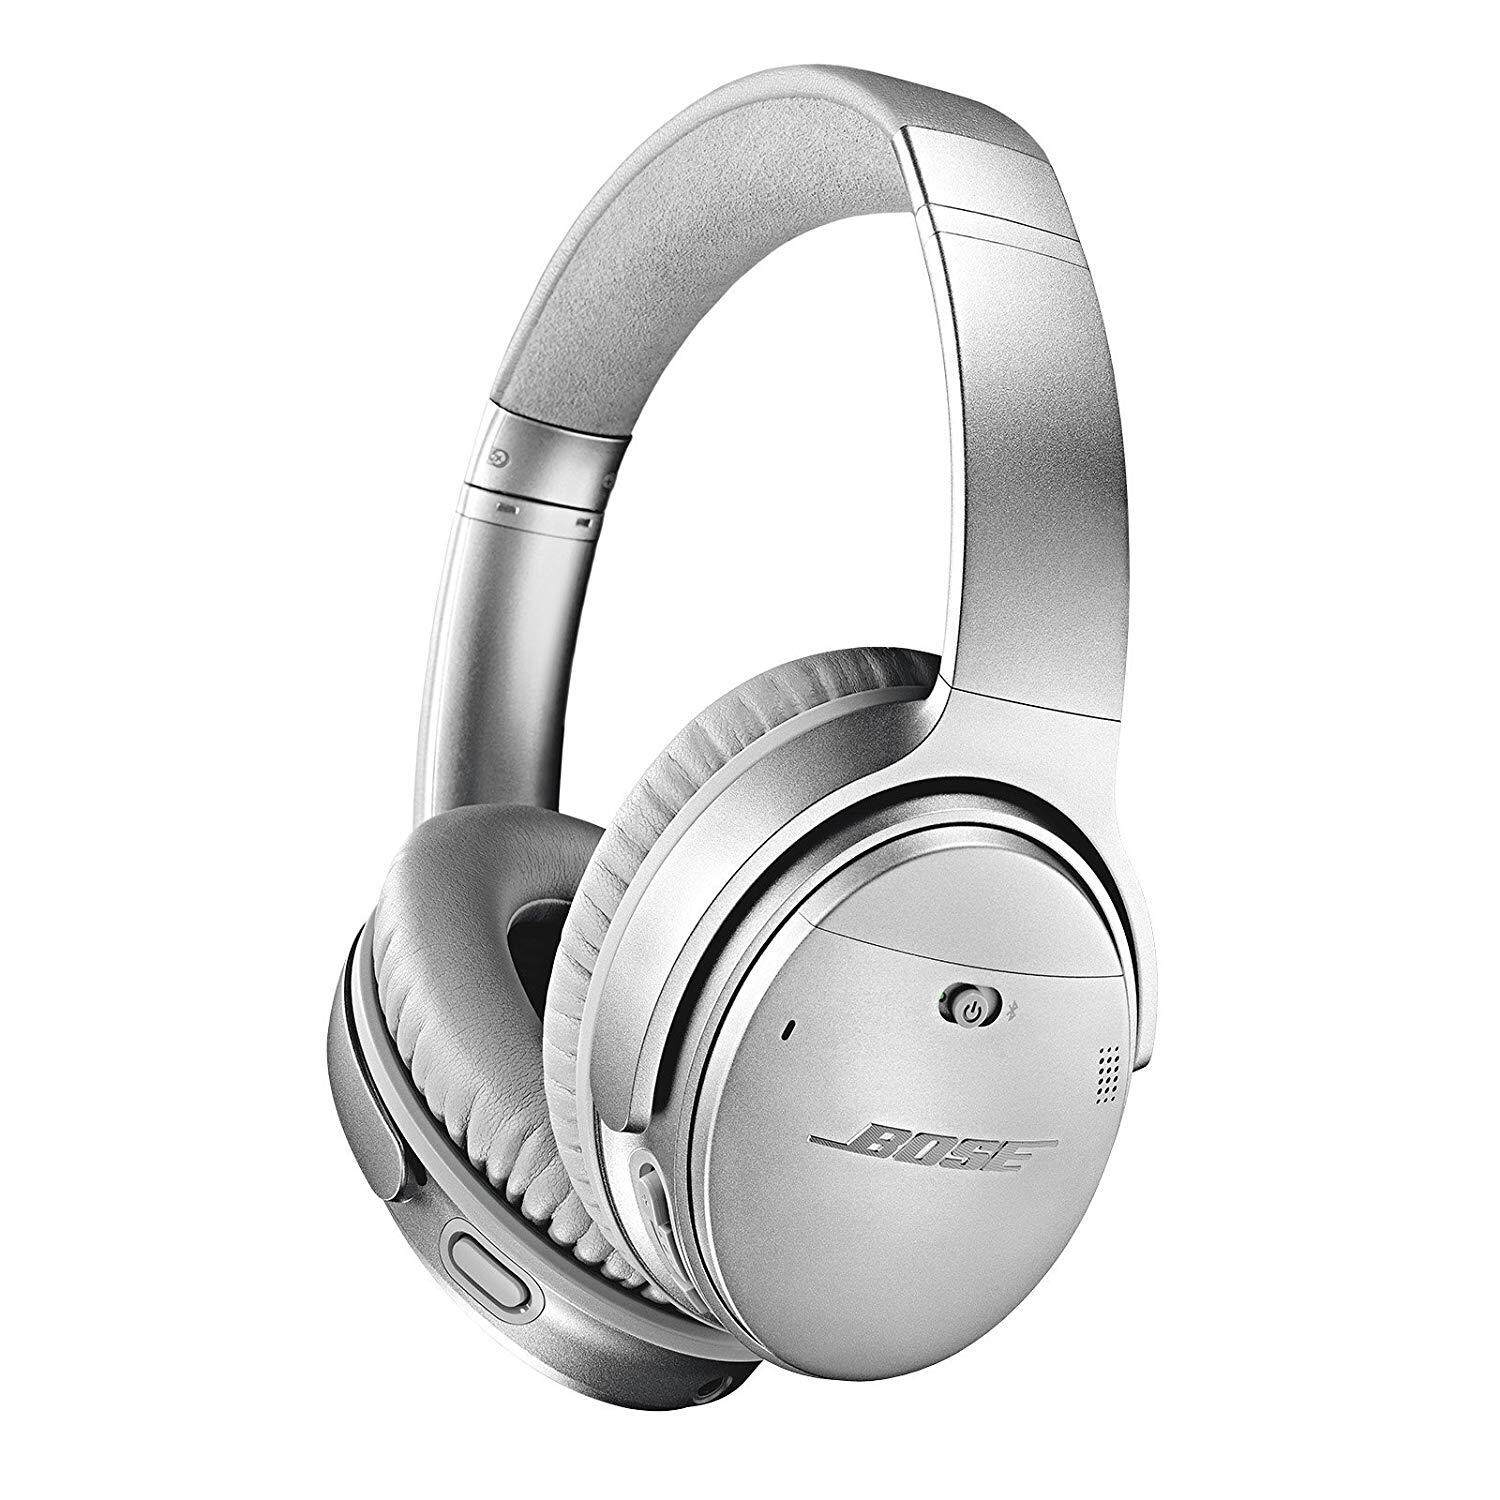 ยี่ห้อไหนดี  ชัยภูมิ Bose QuietComfort 35 Series II Wireless Noise-Canceling Headphones (QC35II) - Silver